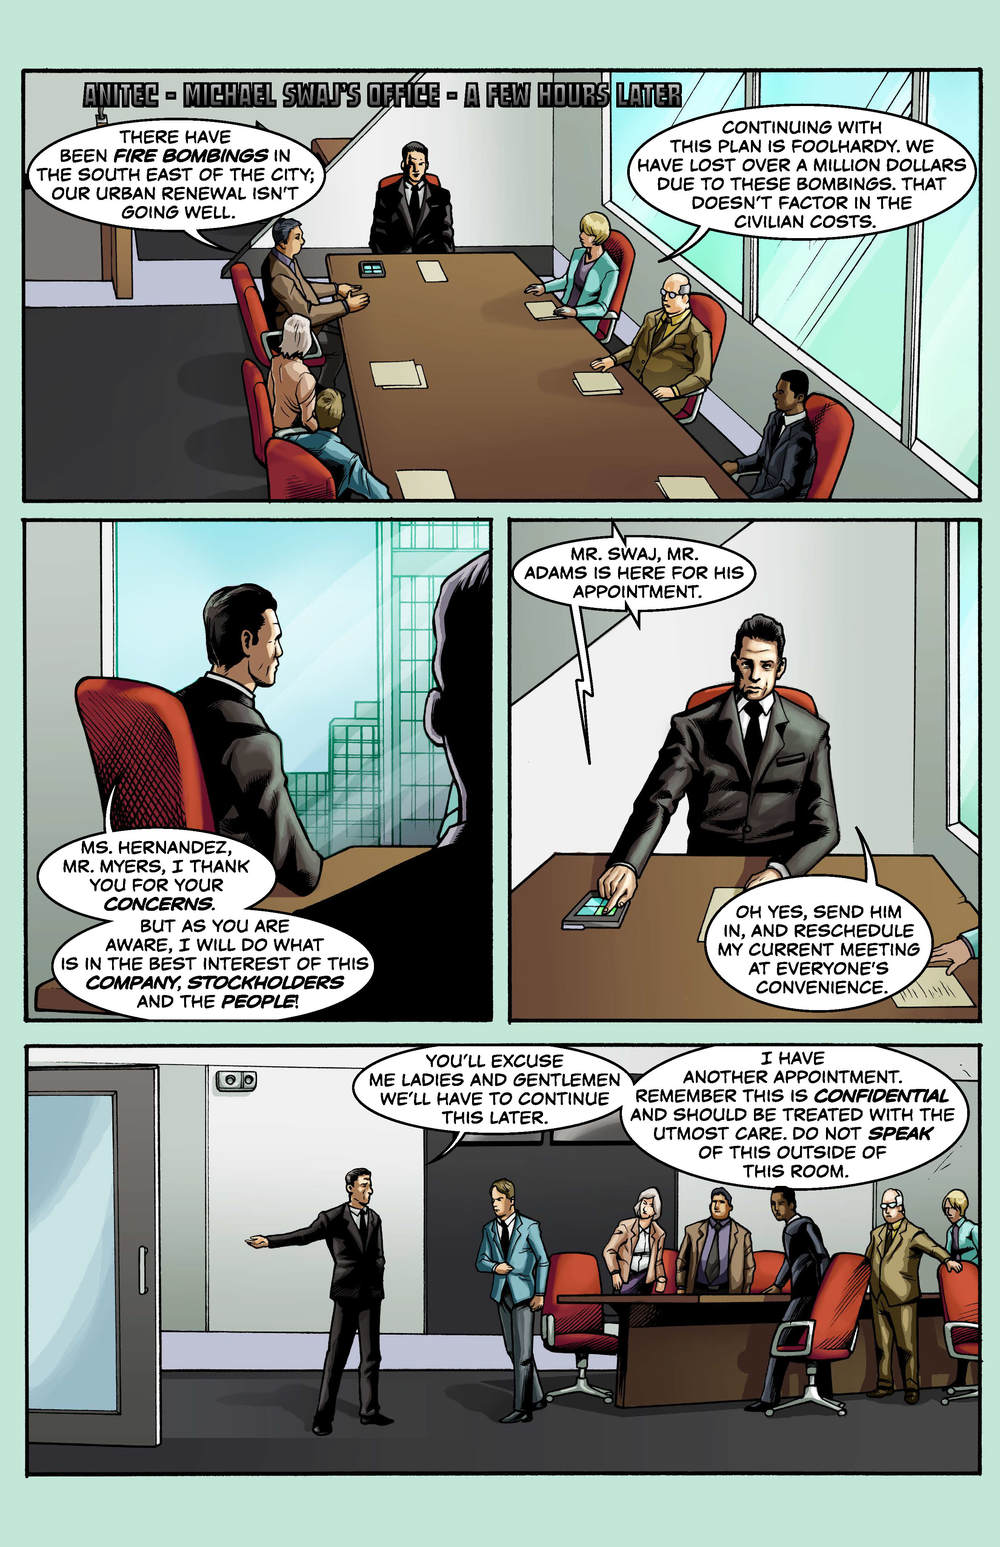 TT_Issue03_Digital_Page_20.jpg